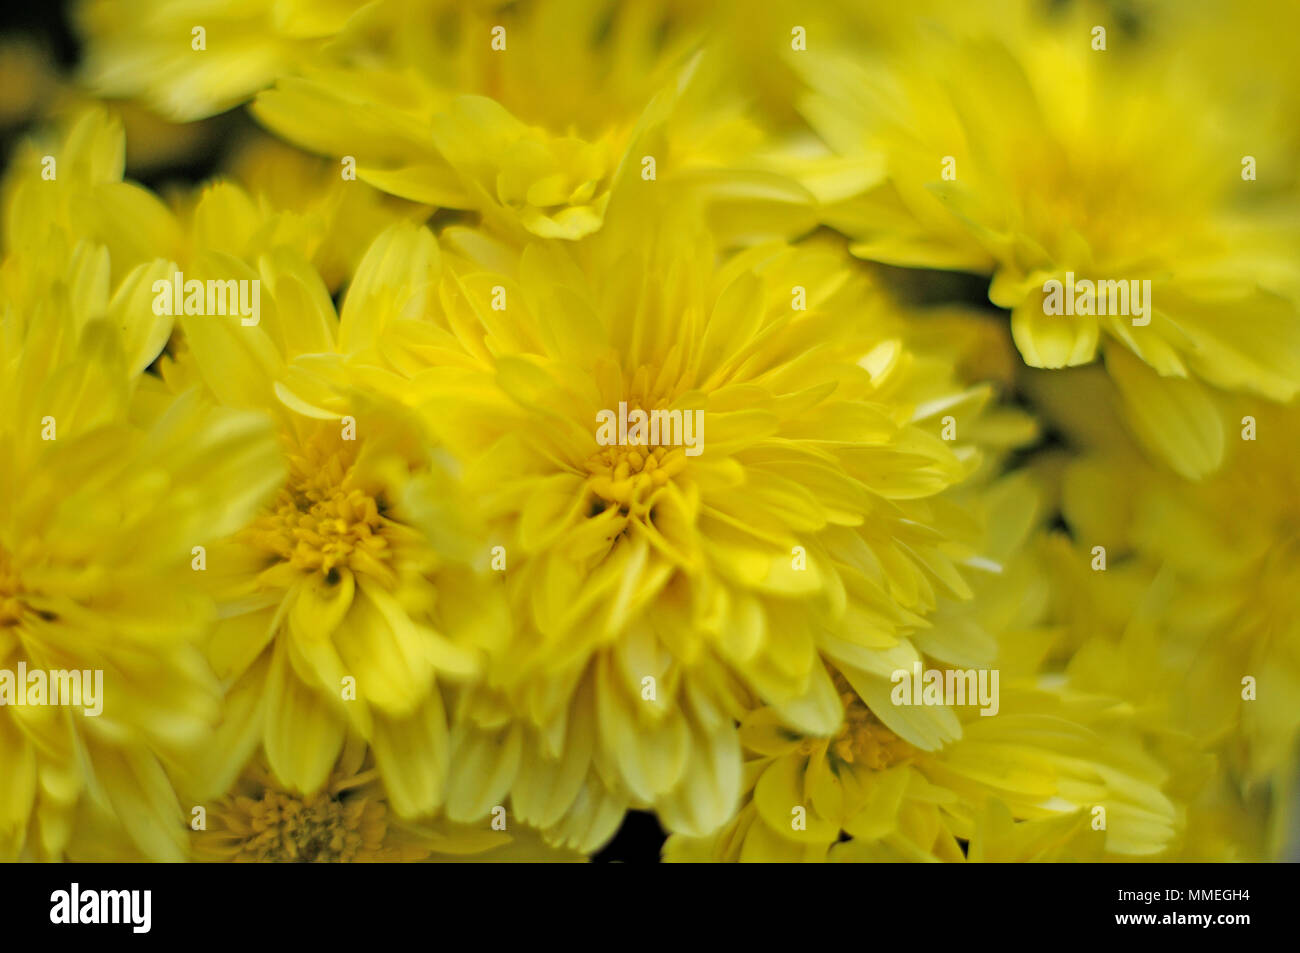 Yellow flowers of garden mums stock photo 184717152 alamy yellow flowers of garden mums mightylinksfo